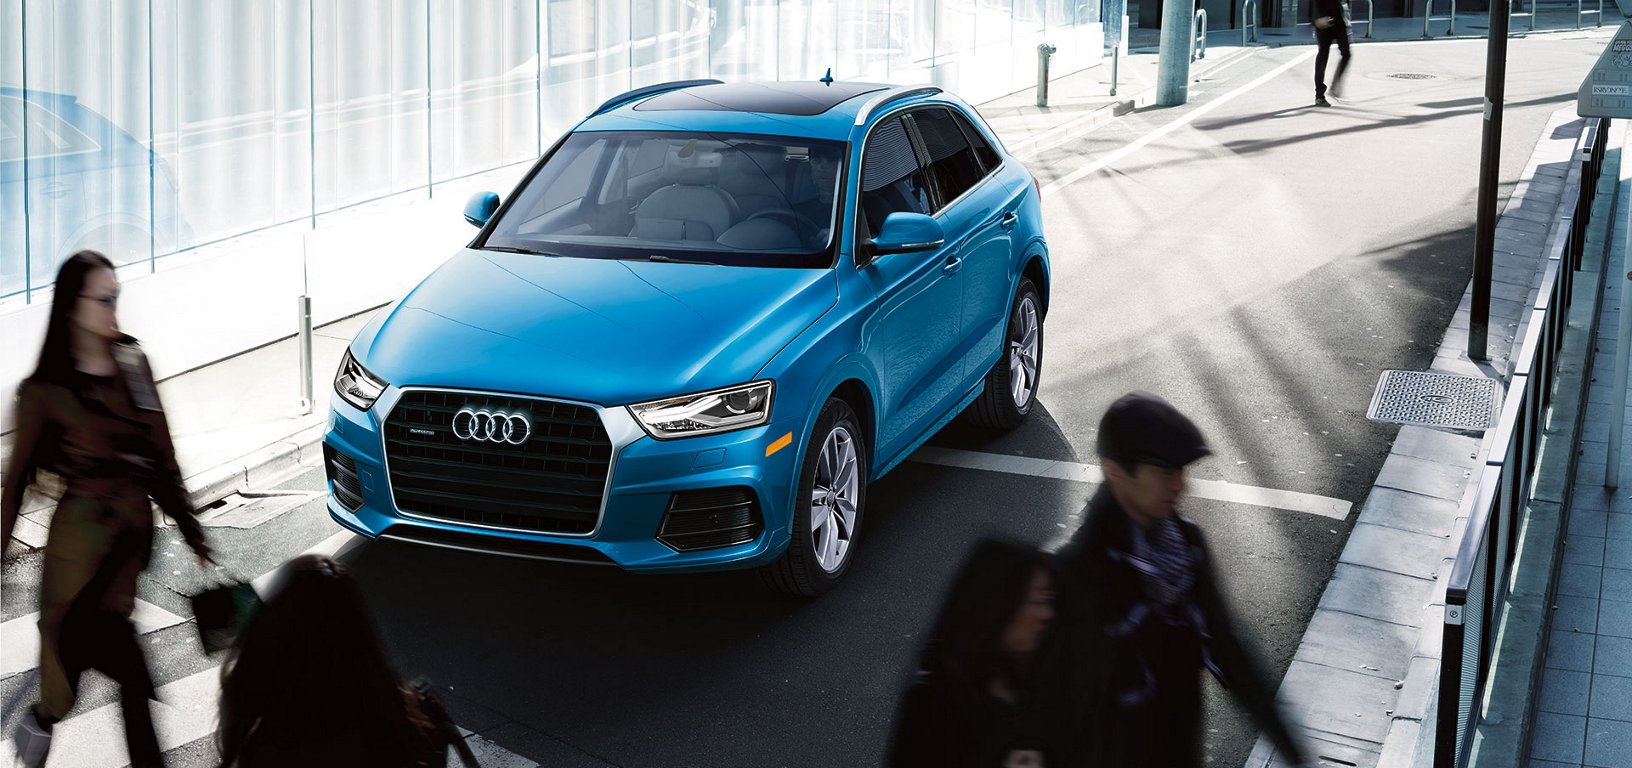 Audi Q Price Lease Des Moines IA - Current audi offers